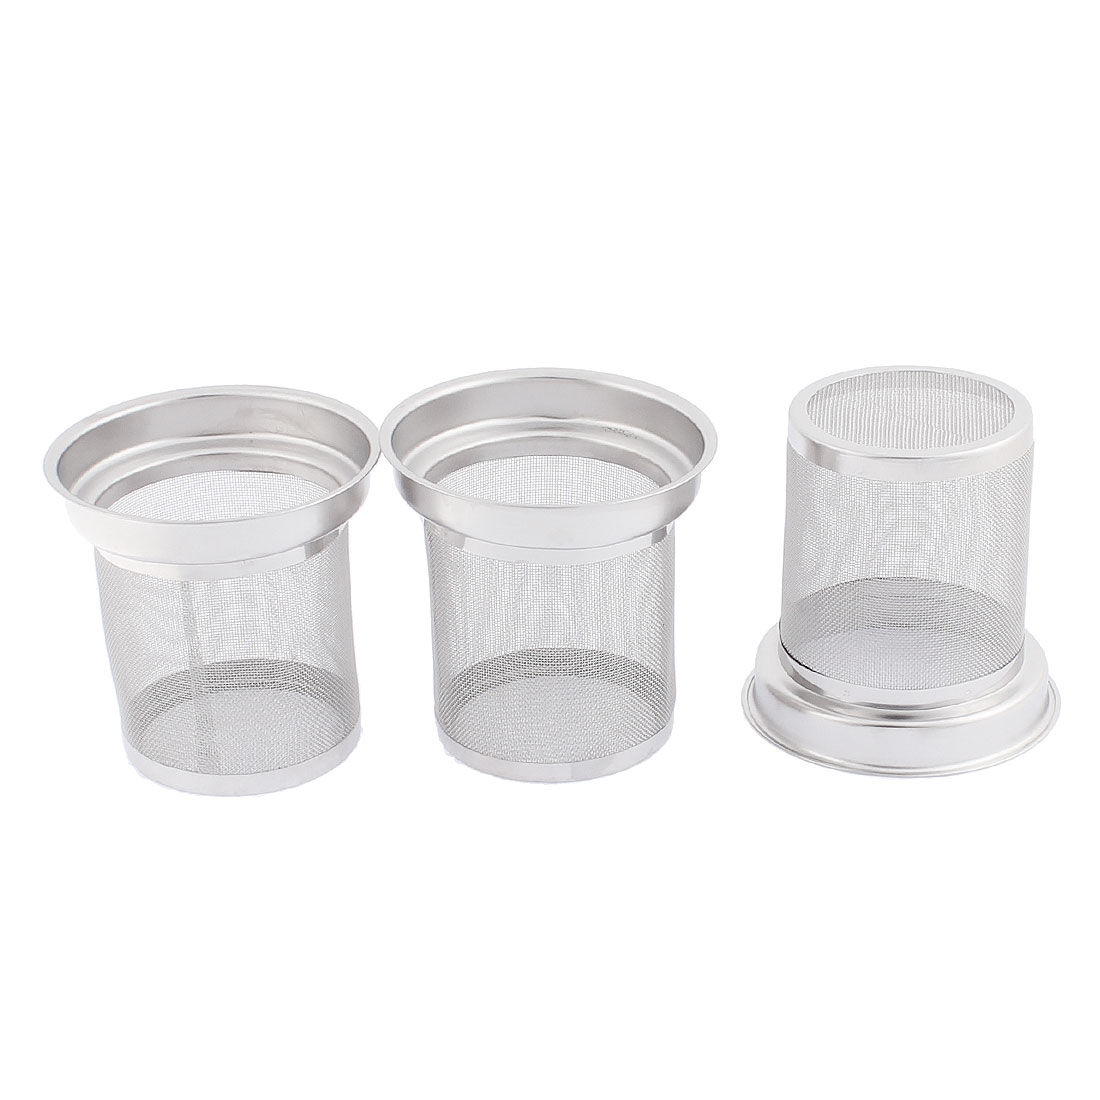 Tea Leaf Spice Stainless Steel Mesh Filter Loose Infuser Strainer 3PCS